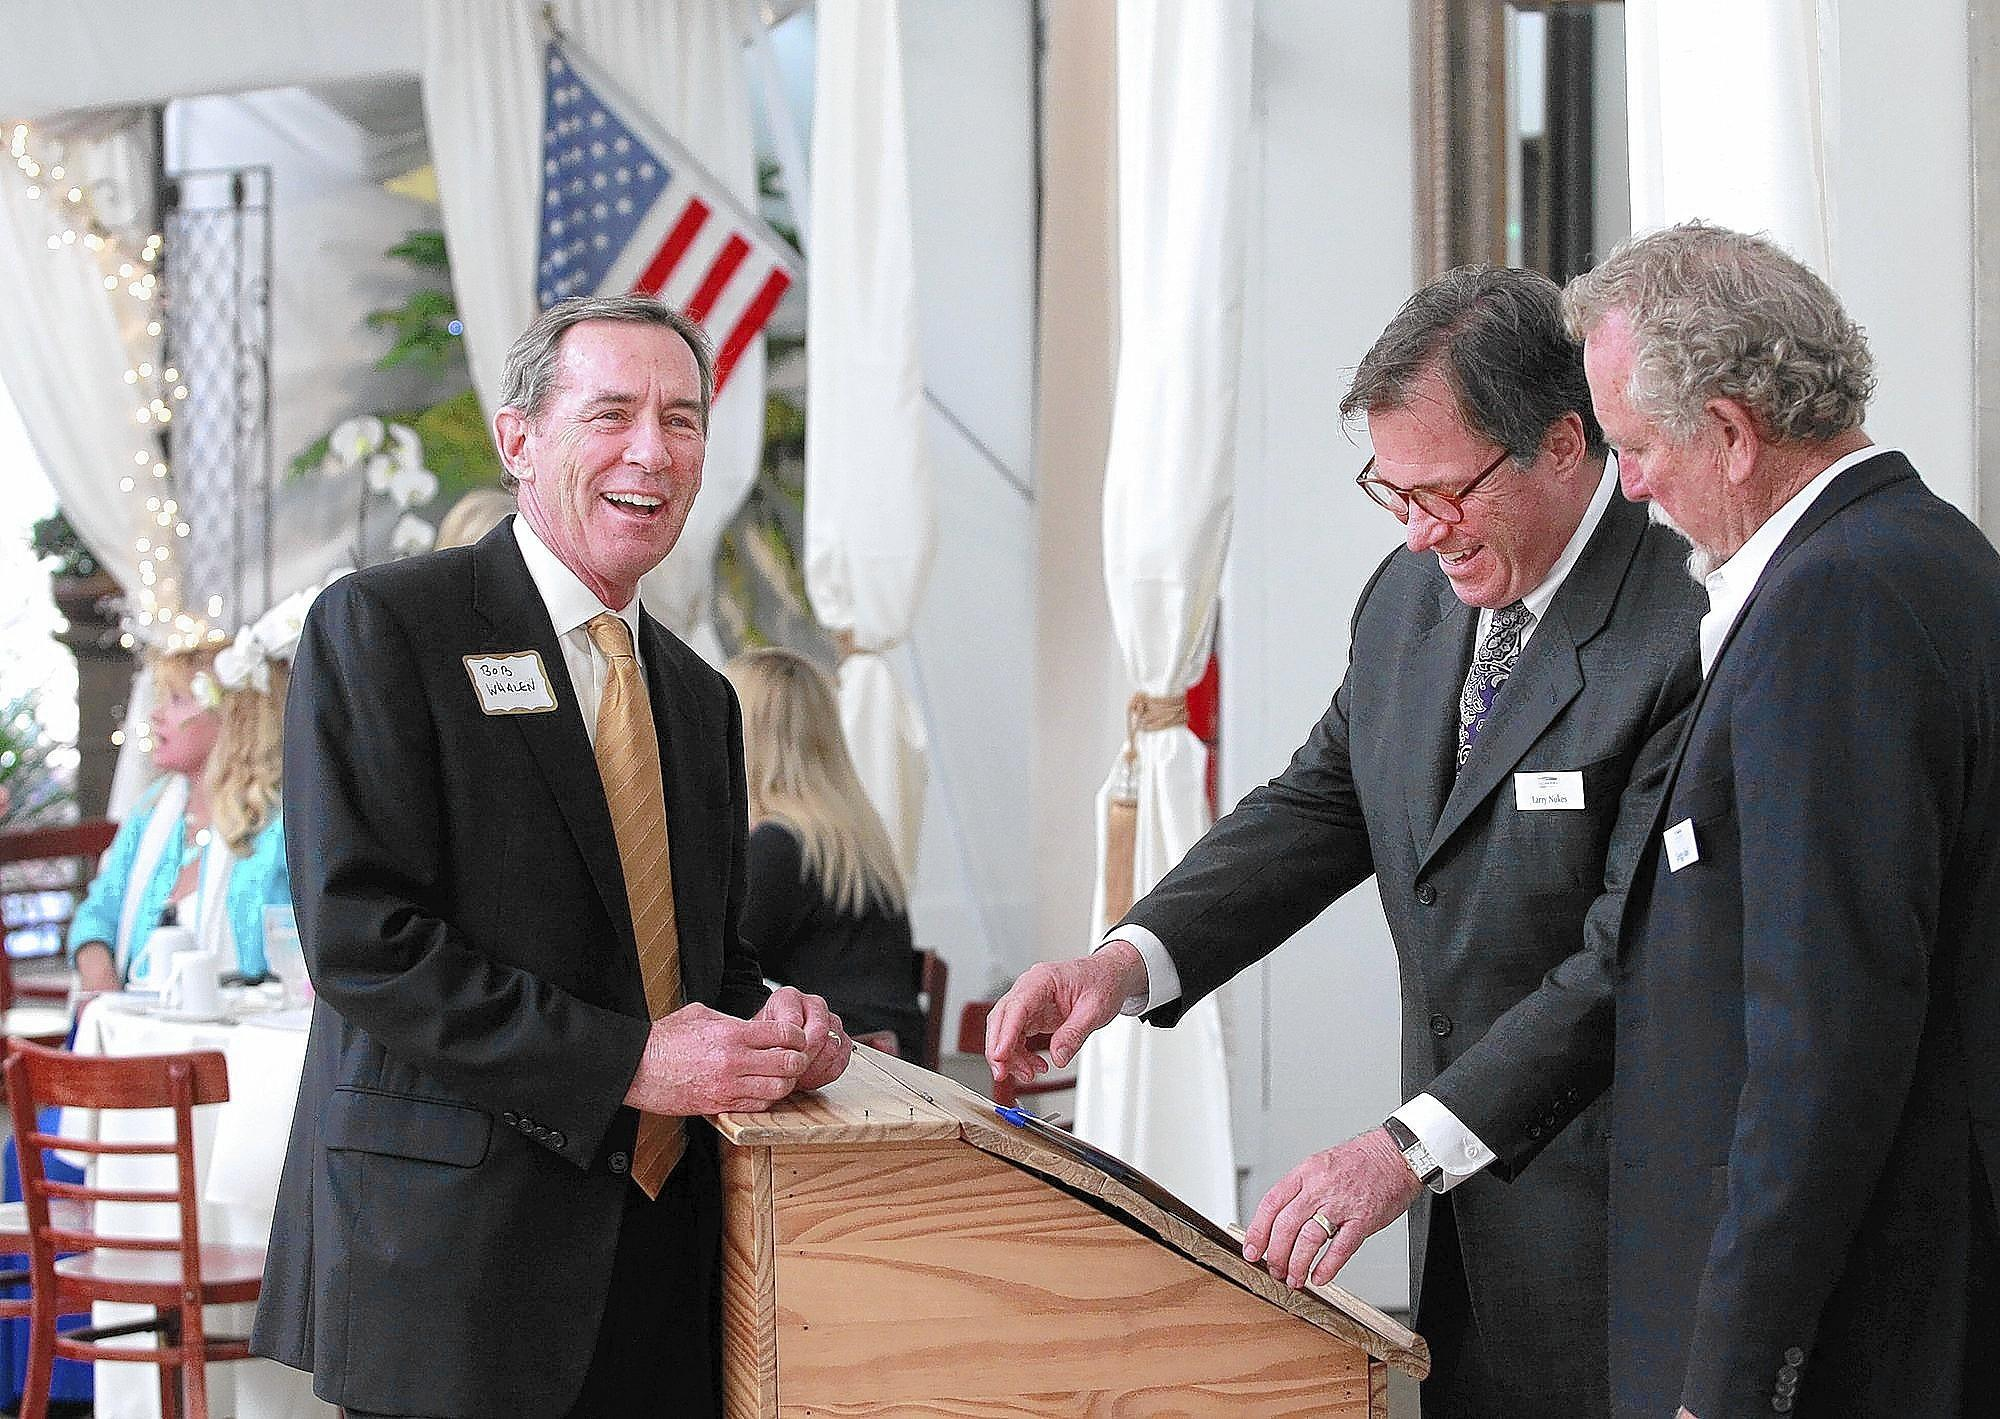 Laguna Beach Mayor Pro Tem Bob Whalen, Chamber president Larry Nokes, and Gregg Abel, who delivered invocation, left to right, chat before beginning the 26th annual Laguna Beach Chamber of Commerce Leadership Luncheon at Tivoli Too on Tuesday.